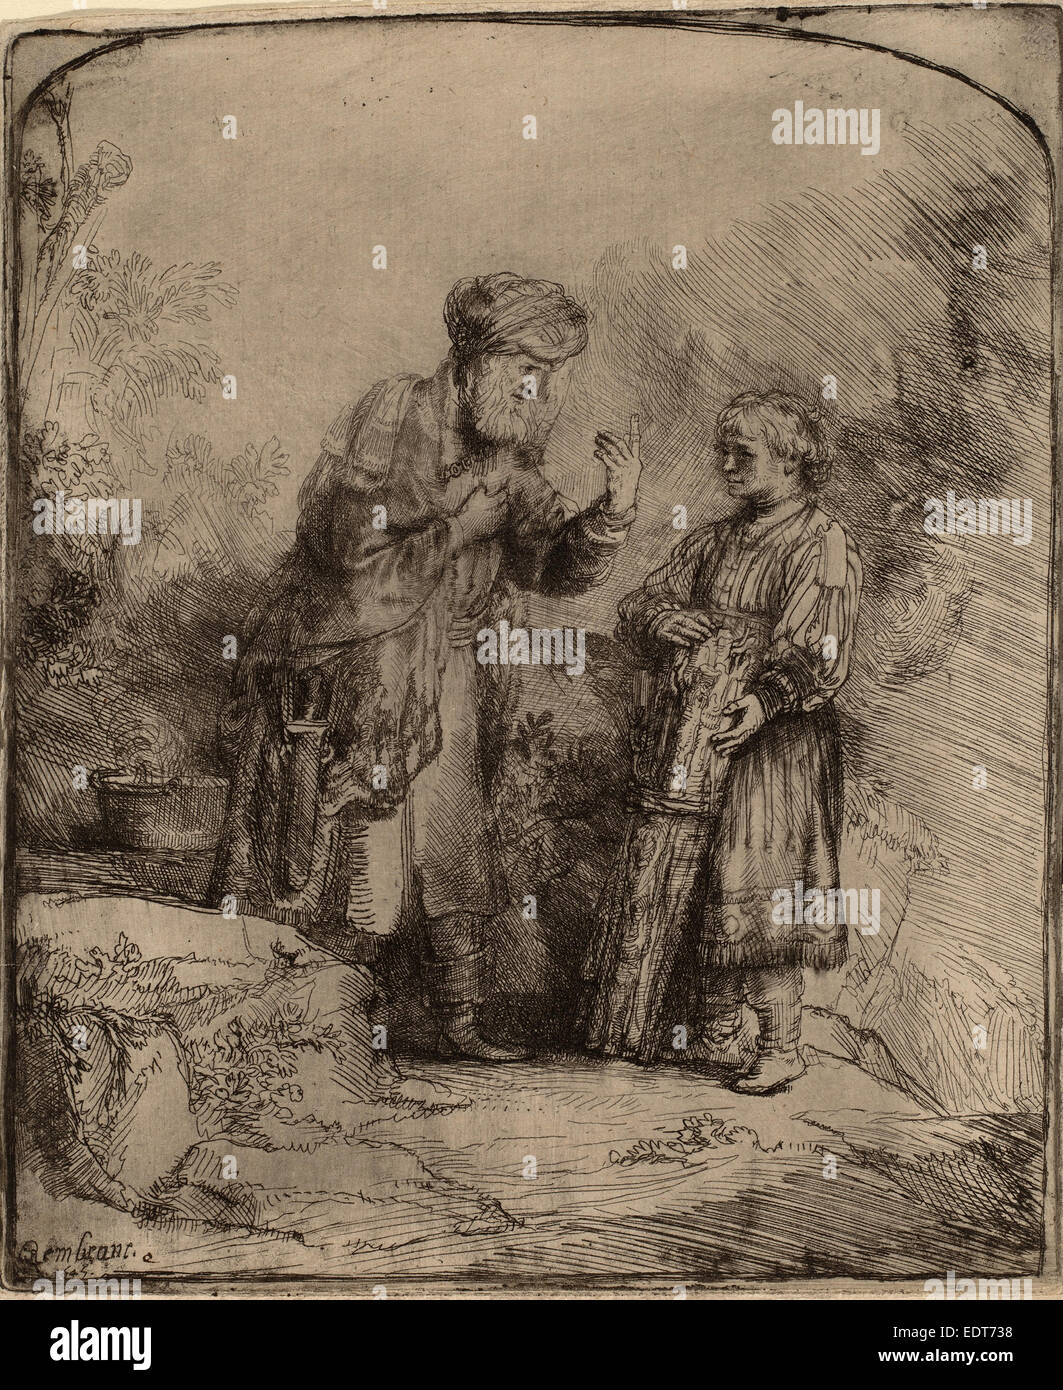 Rembrandt van Rijn (Dutch, 1606 - 1669), Abraham and Isaac, 1645, etching and burin - Stock Image